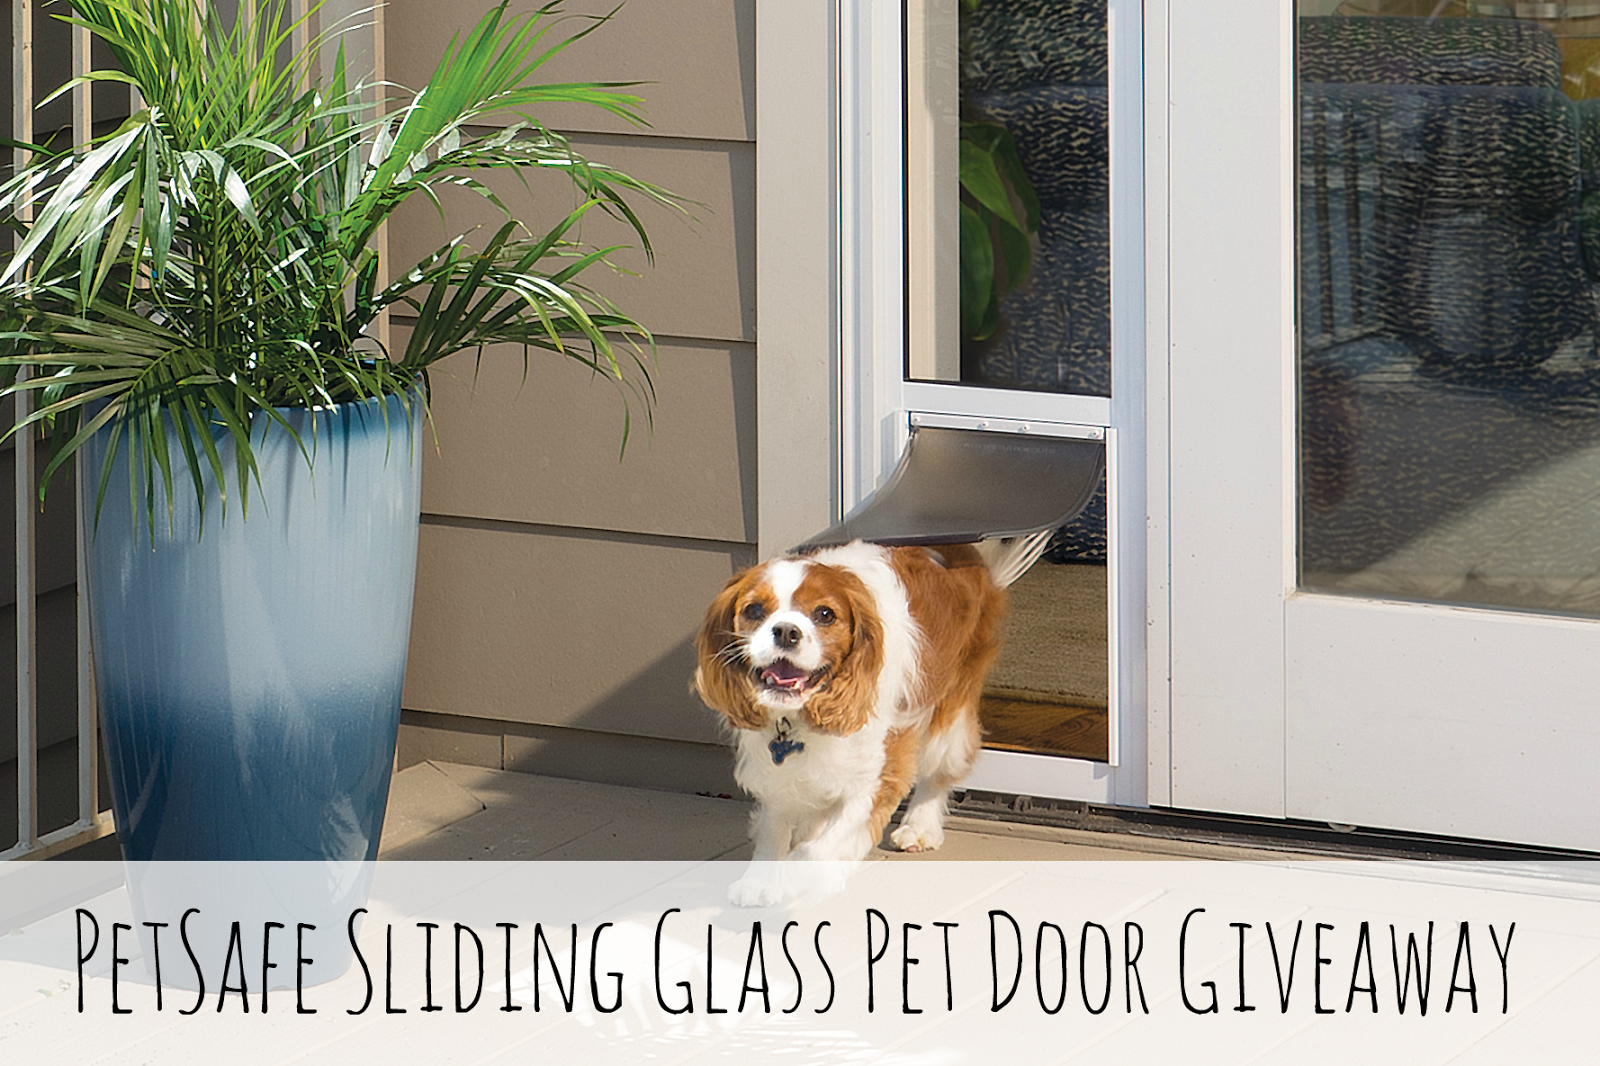 Nice One of our lucky readers will have the chance to win their very own PetSafe Sliding Glass Pet Door The winner can choose which size door they will need for